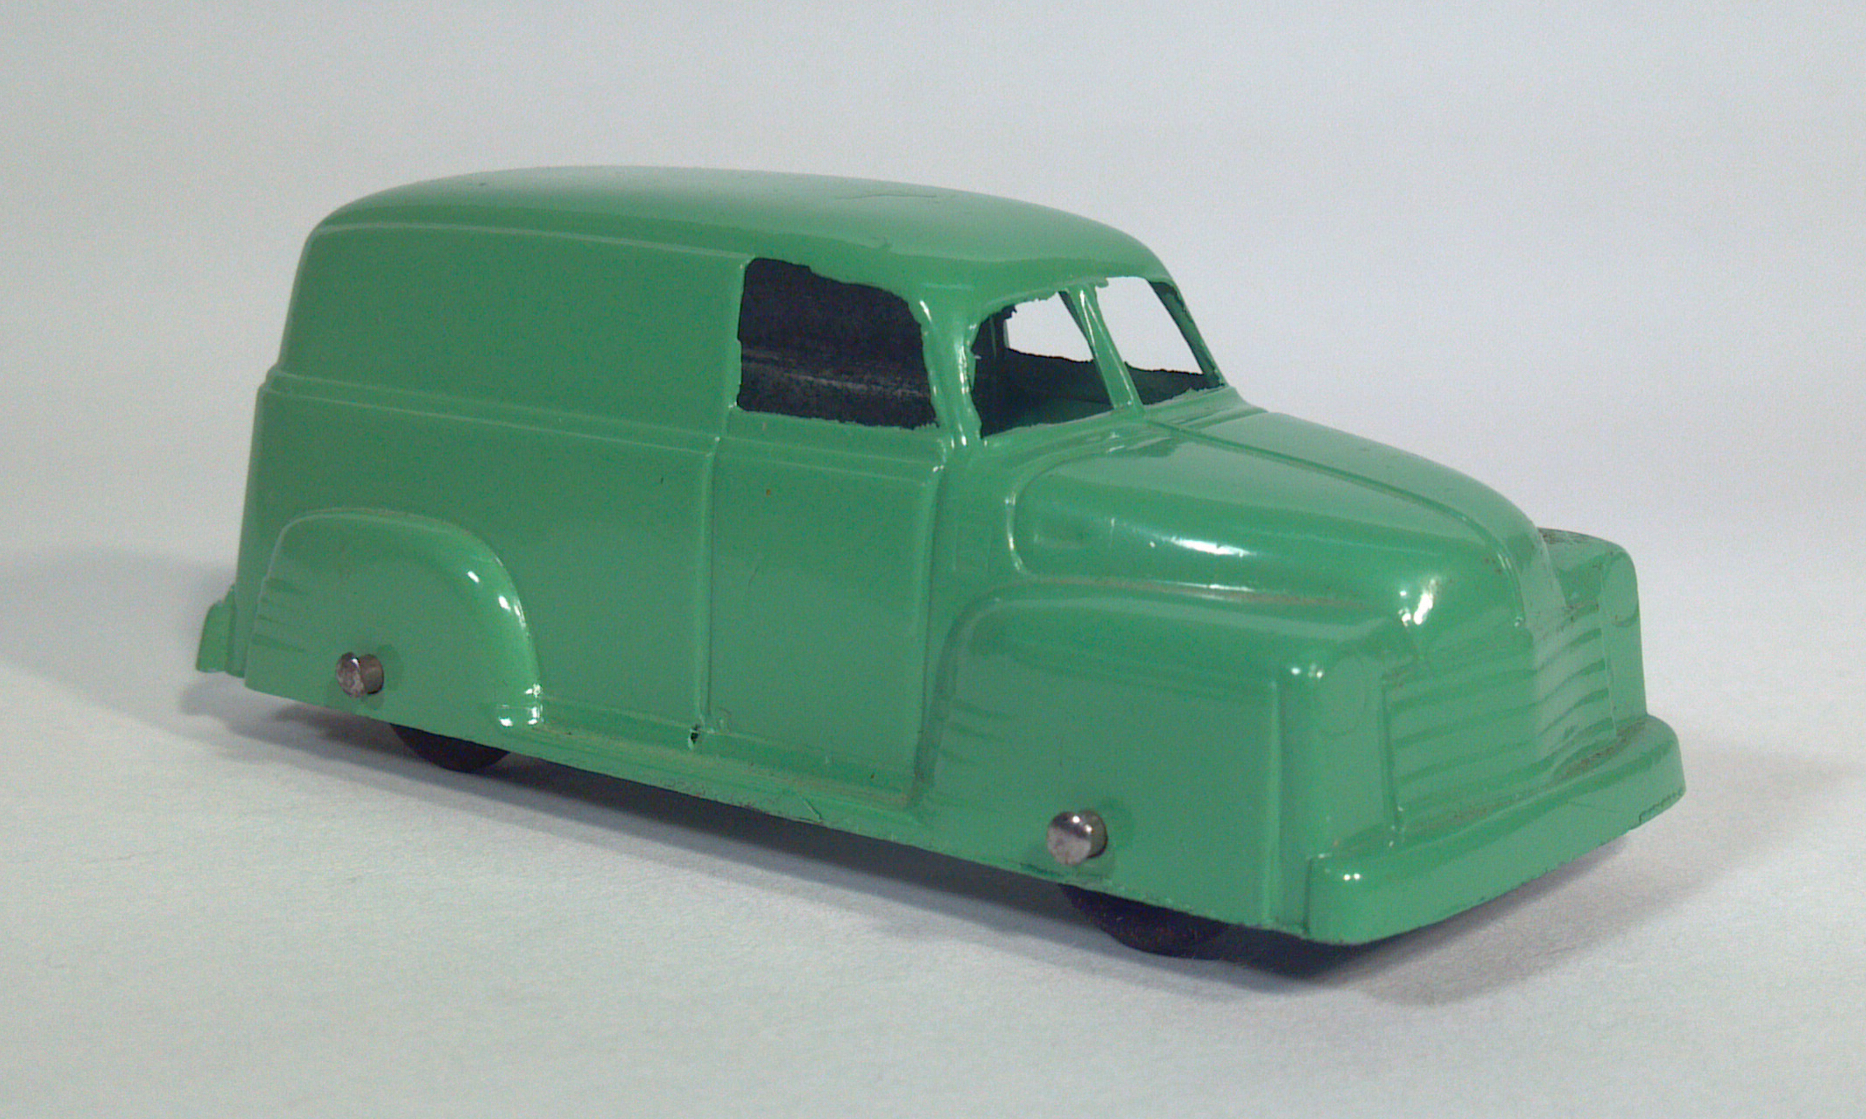 Post War Tootsietoy Diecast Toy Vehicles Scale Models Cars Trucks 48 Ford Pu Wiring Missing